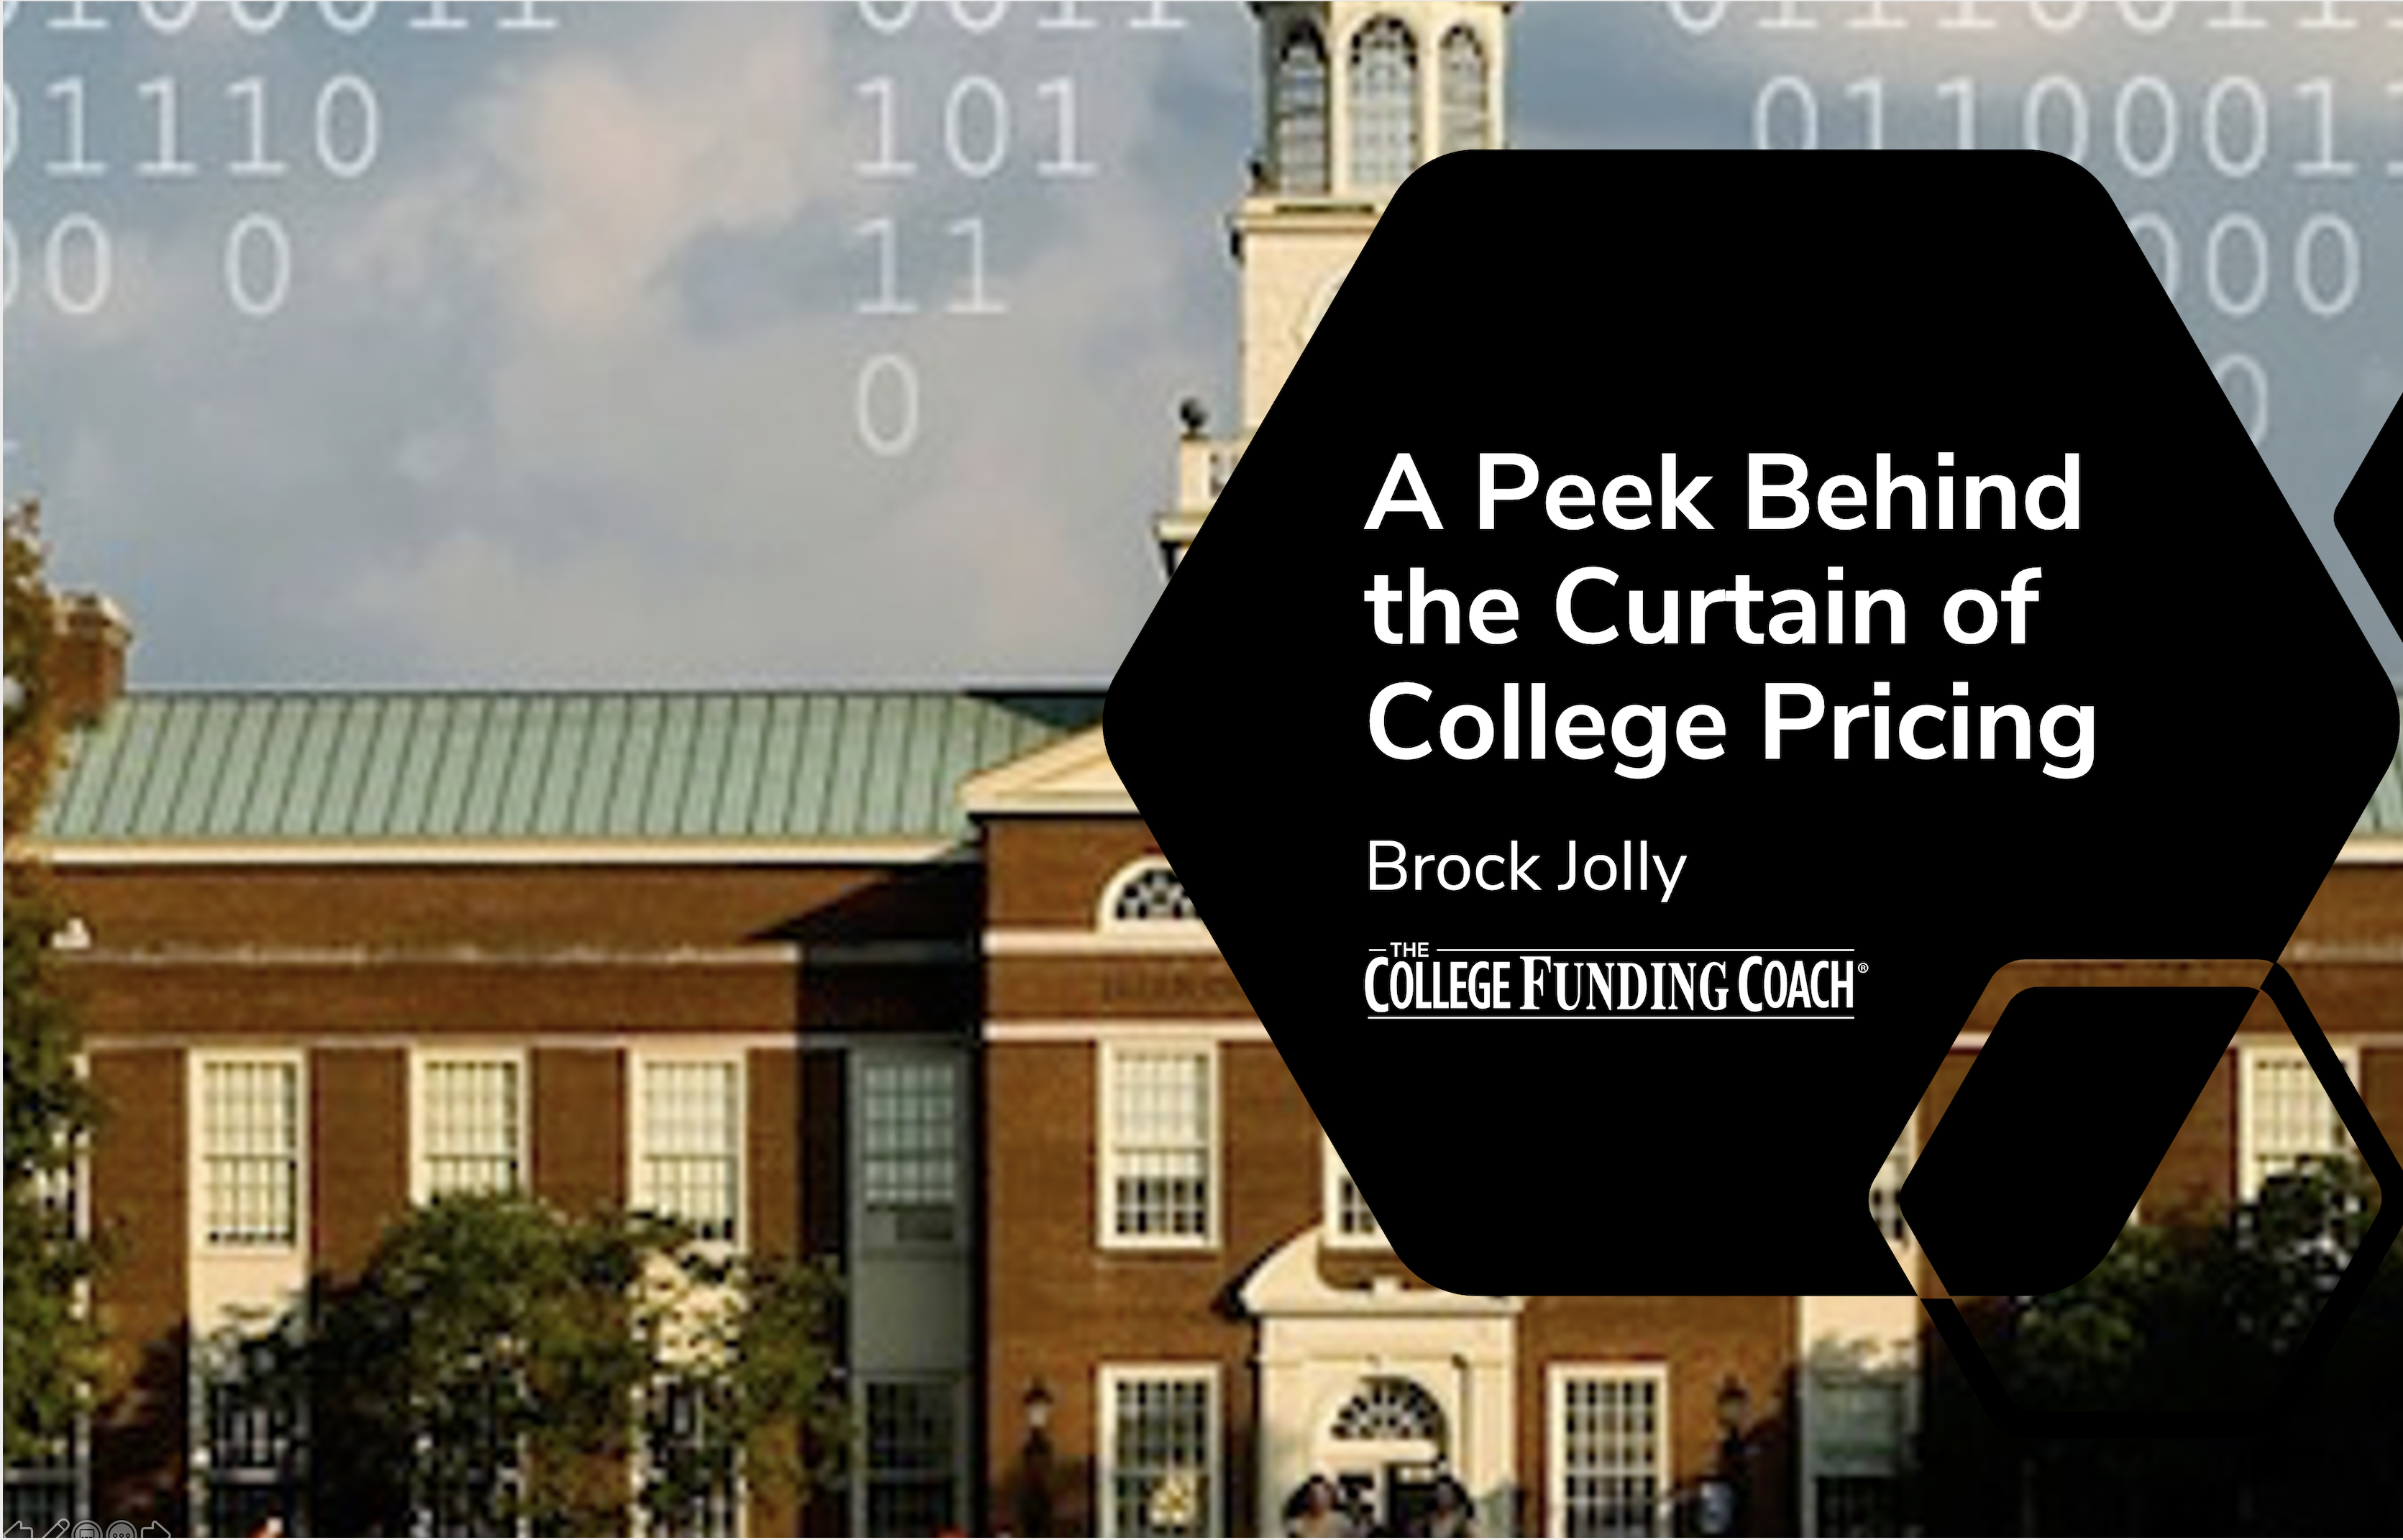 A Peek Behind the Curtain of College Pricing